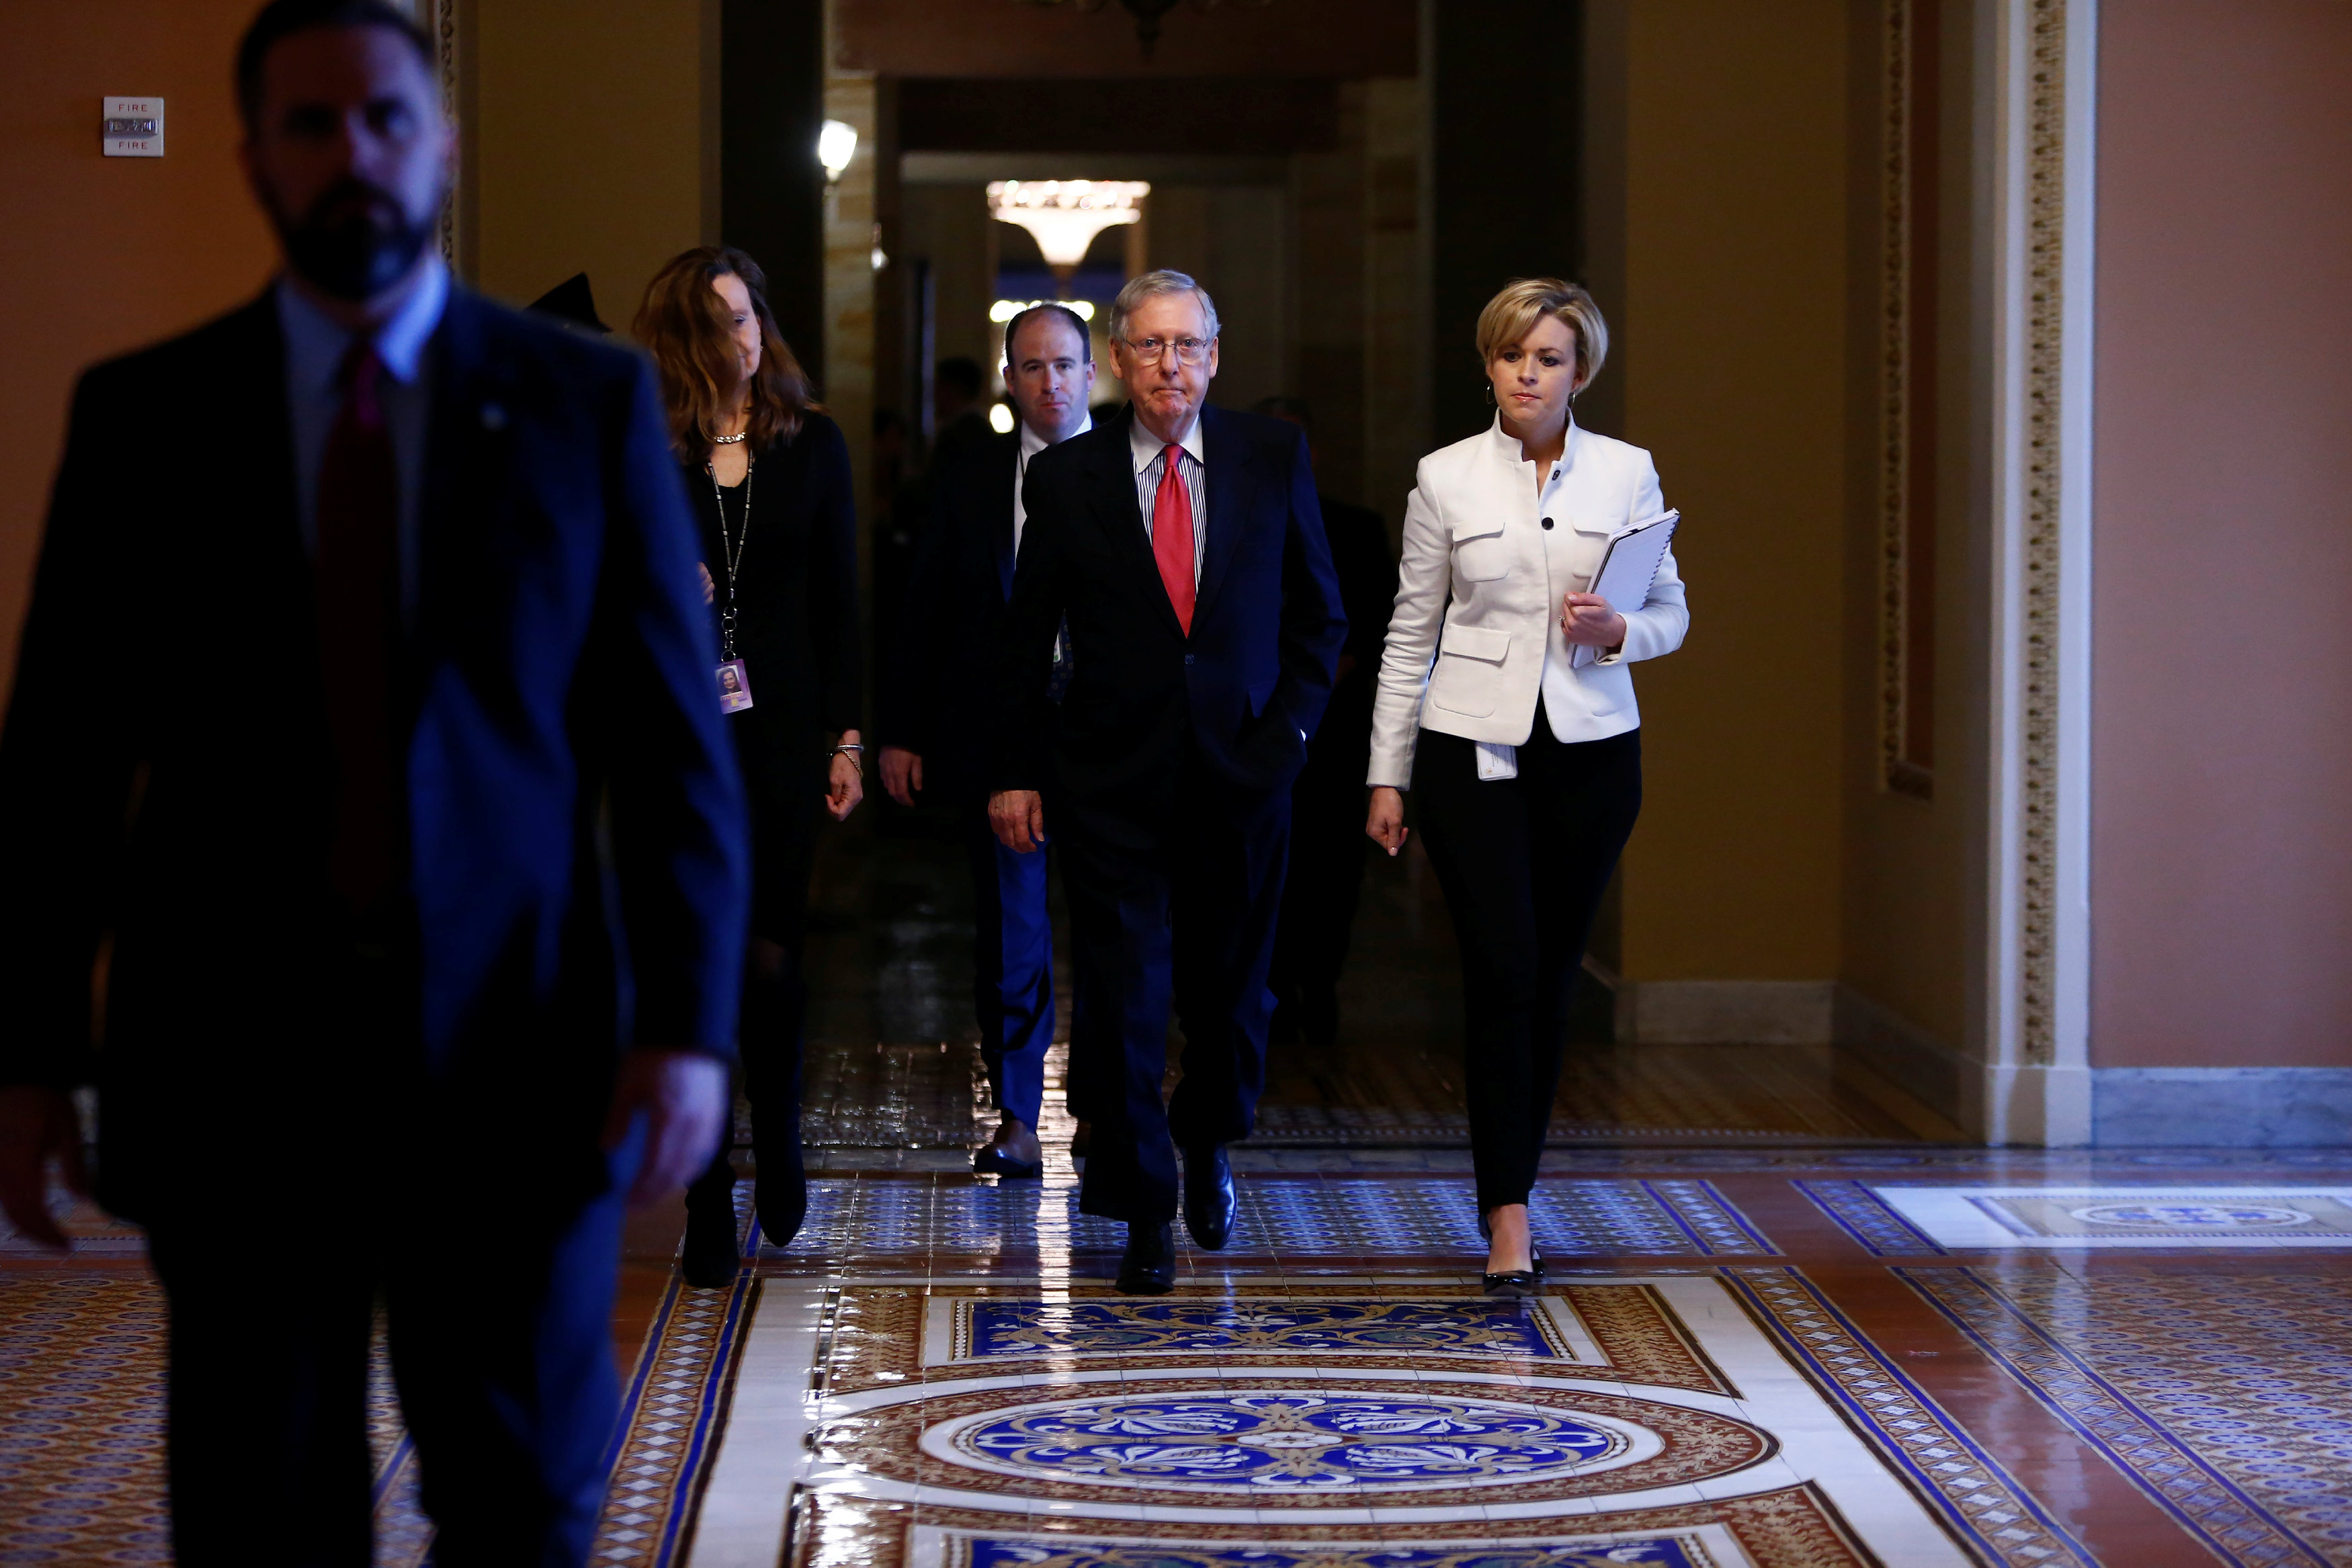 U.S. Senate Majority Leader Mitch McConnell walks to the Senate Chamber on Capitol Hill in Washington on April 6, 2017. (REUTERS/Eric Thayer)